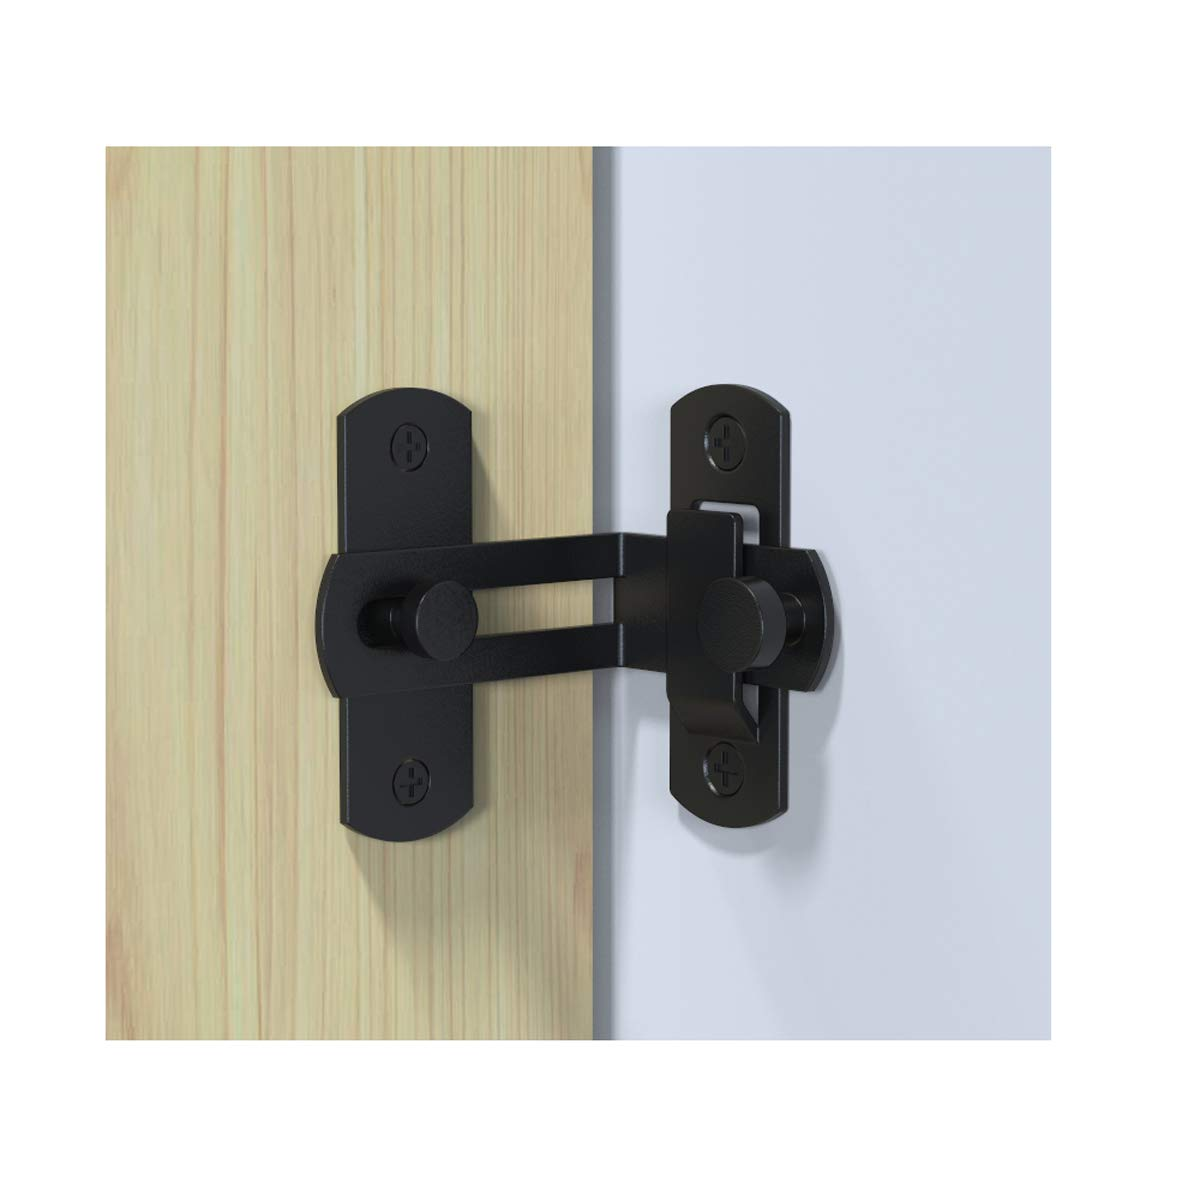 2 PCS 90 Degree Right Angle Door Latch Hasp Bending Latch Buckle Bolt Sliding Lock Barrel Bolt with Screws for Doors and Windows by ming